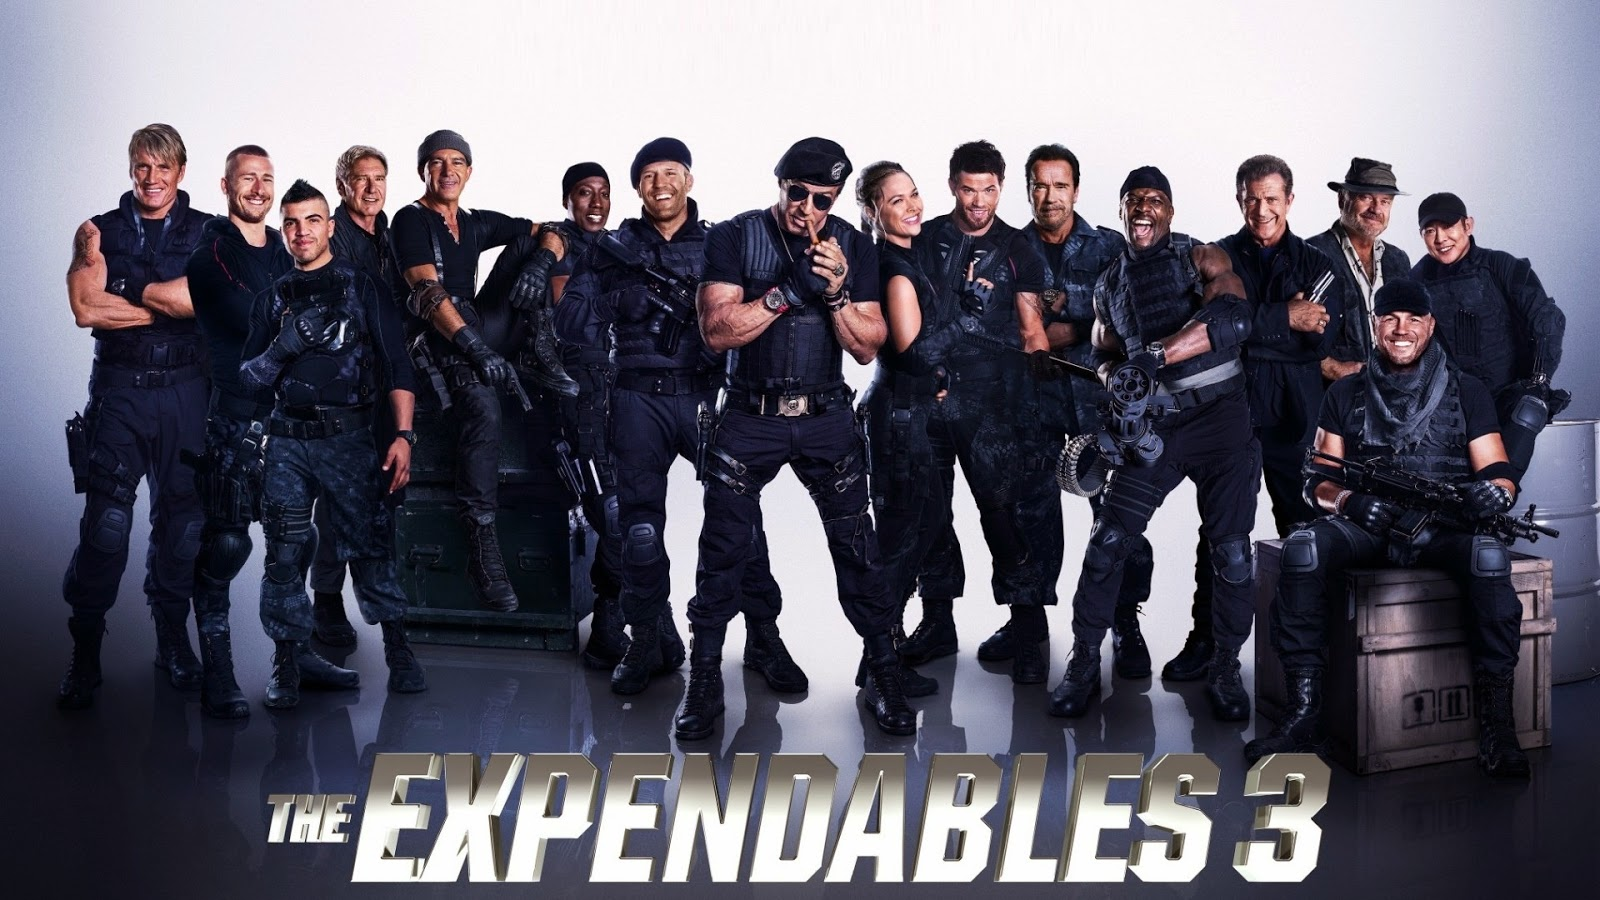 the_expendables_3_poster-1920x1080.jpg